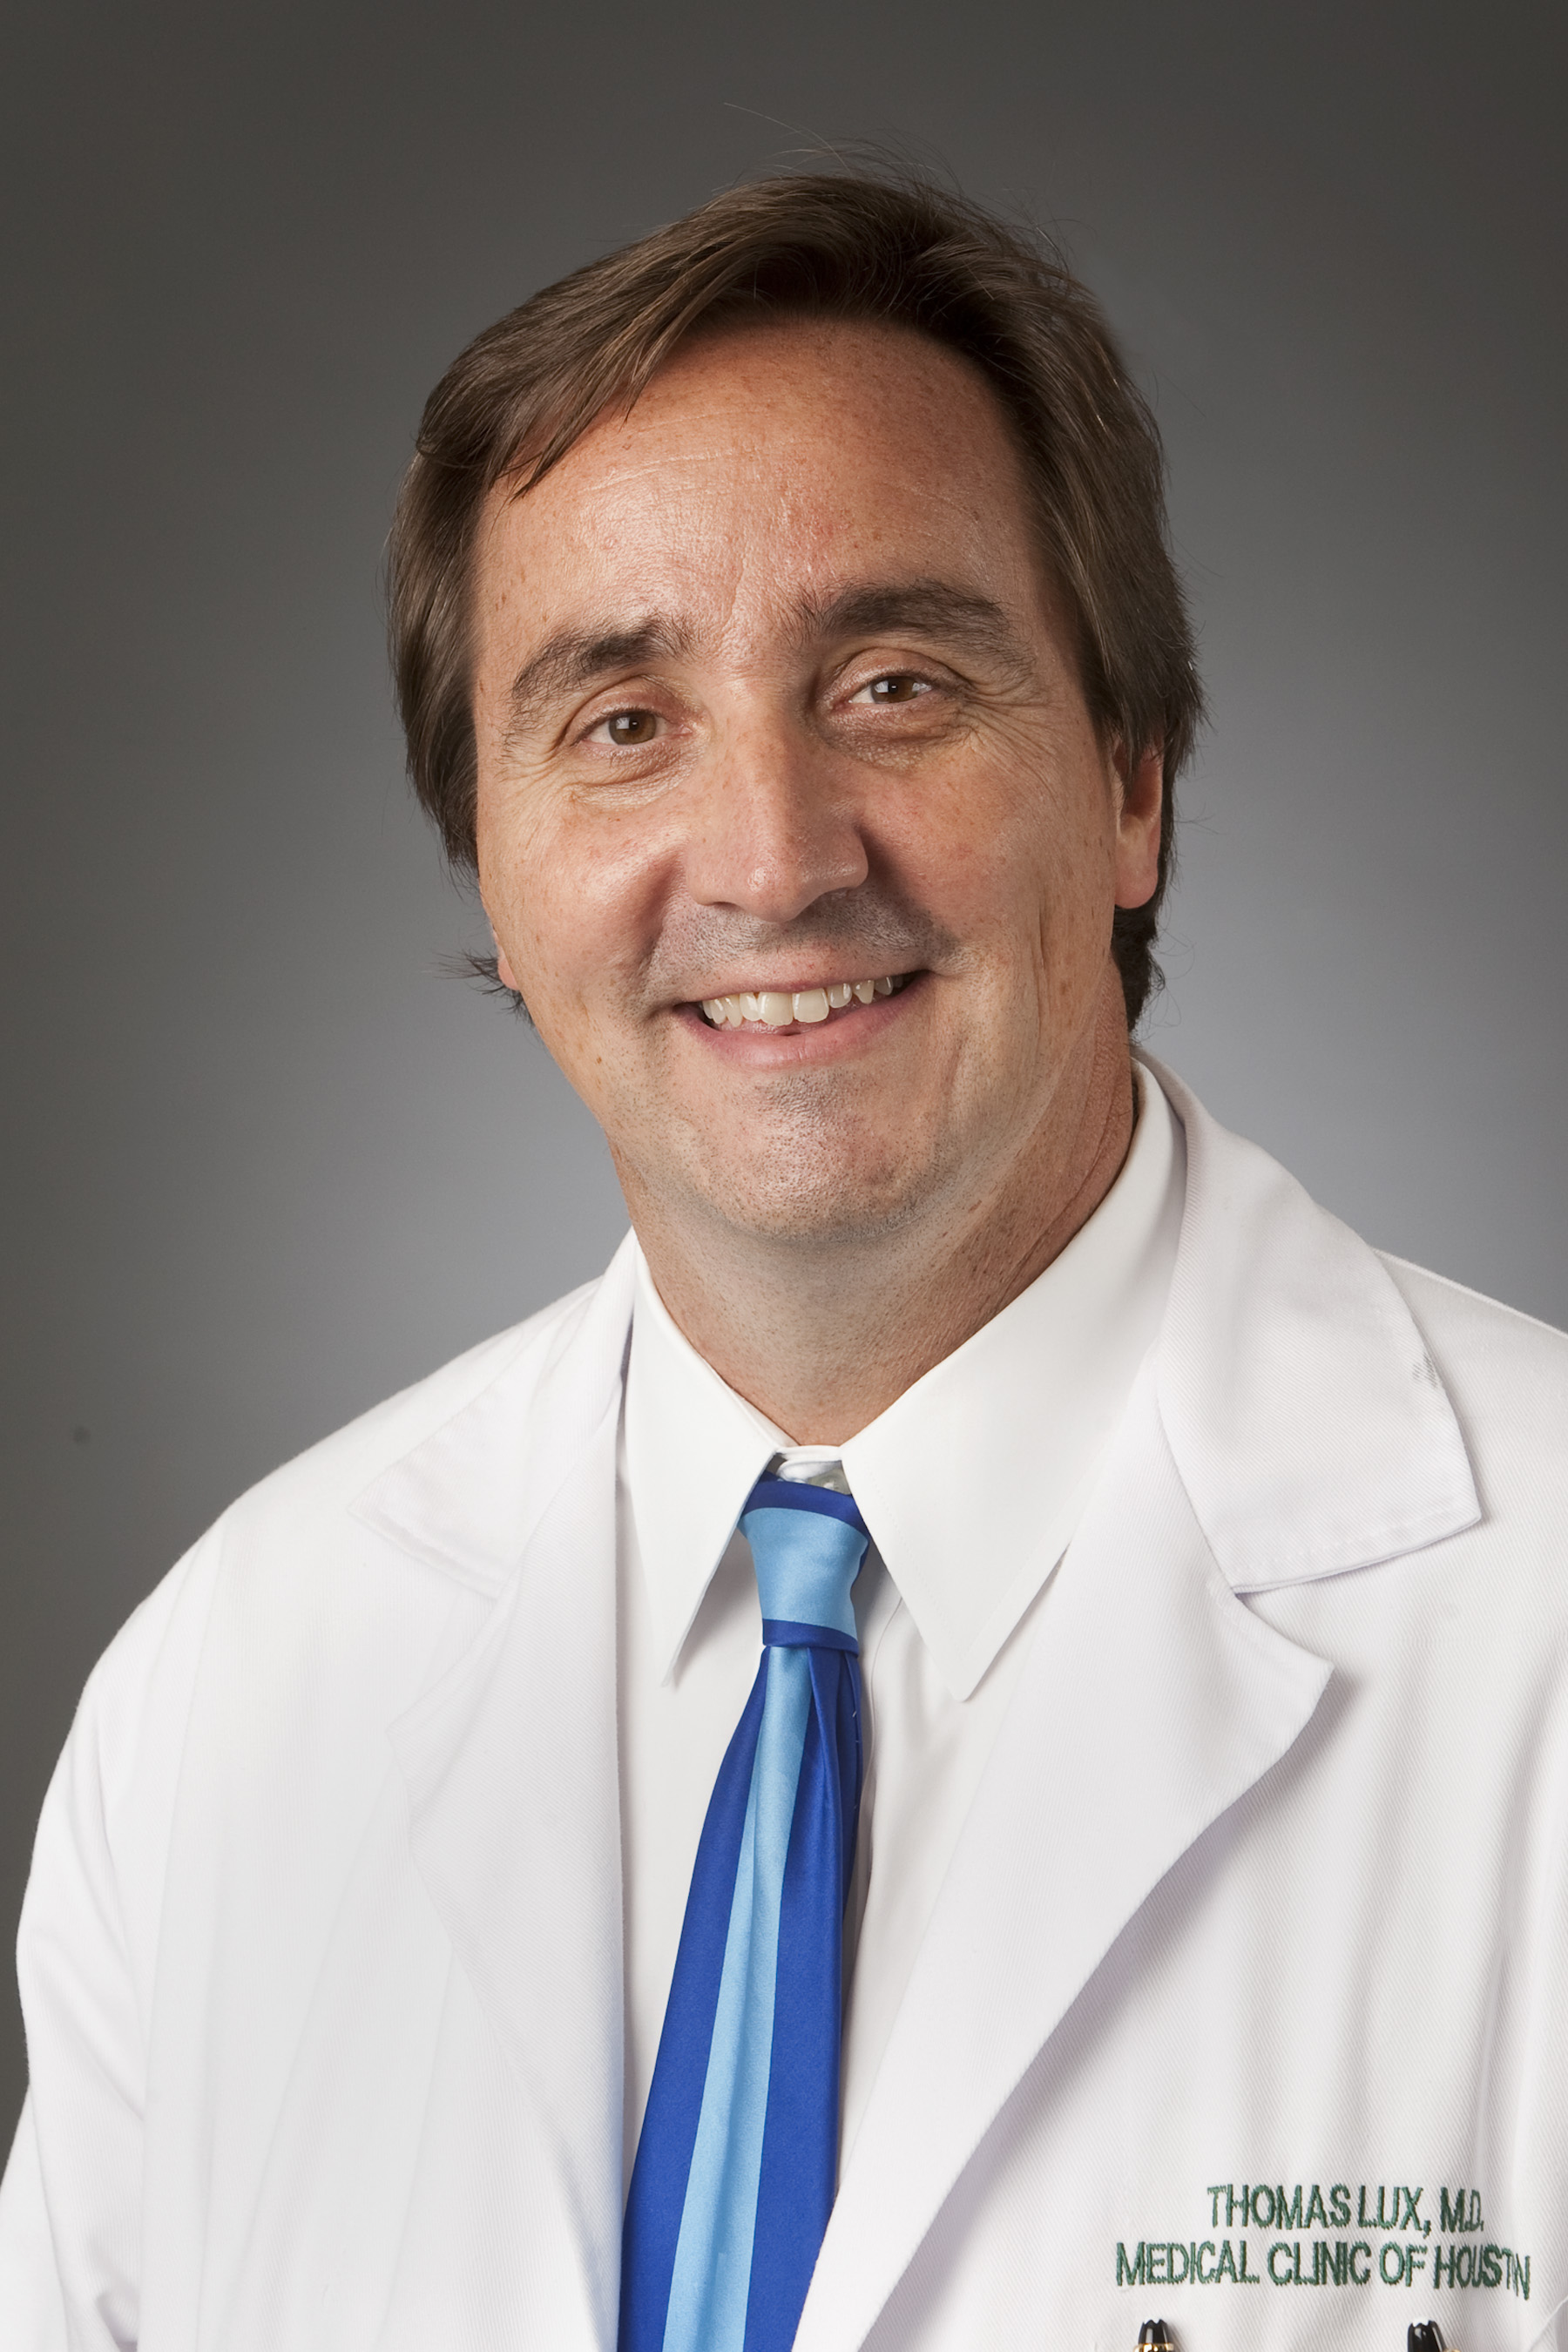 Thomas R Lux, MD